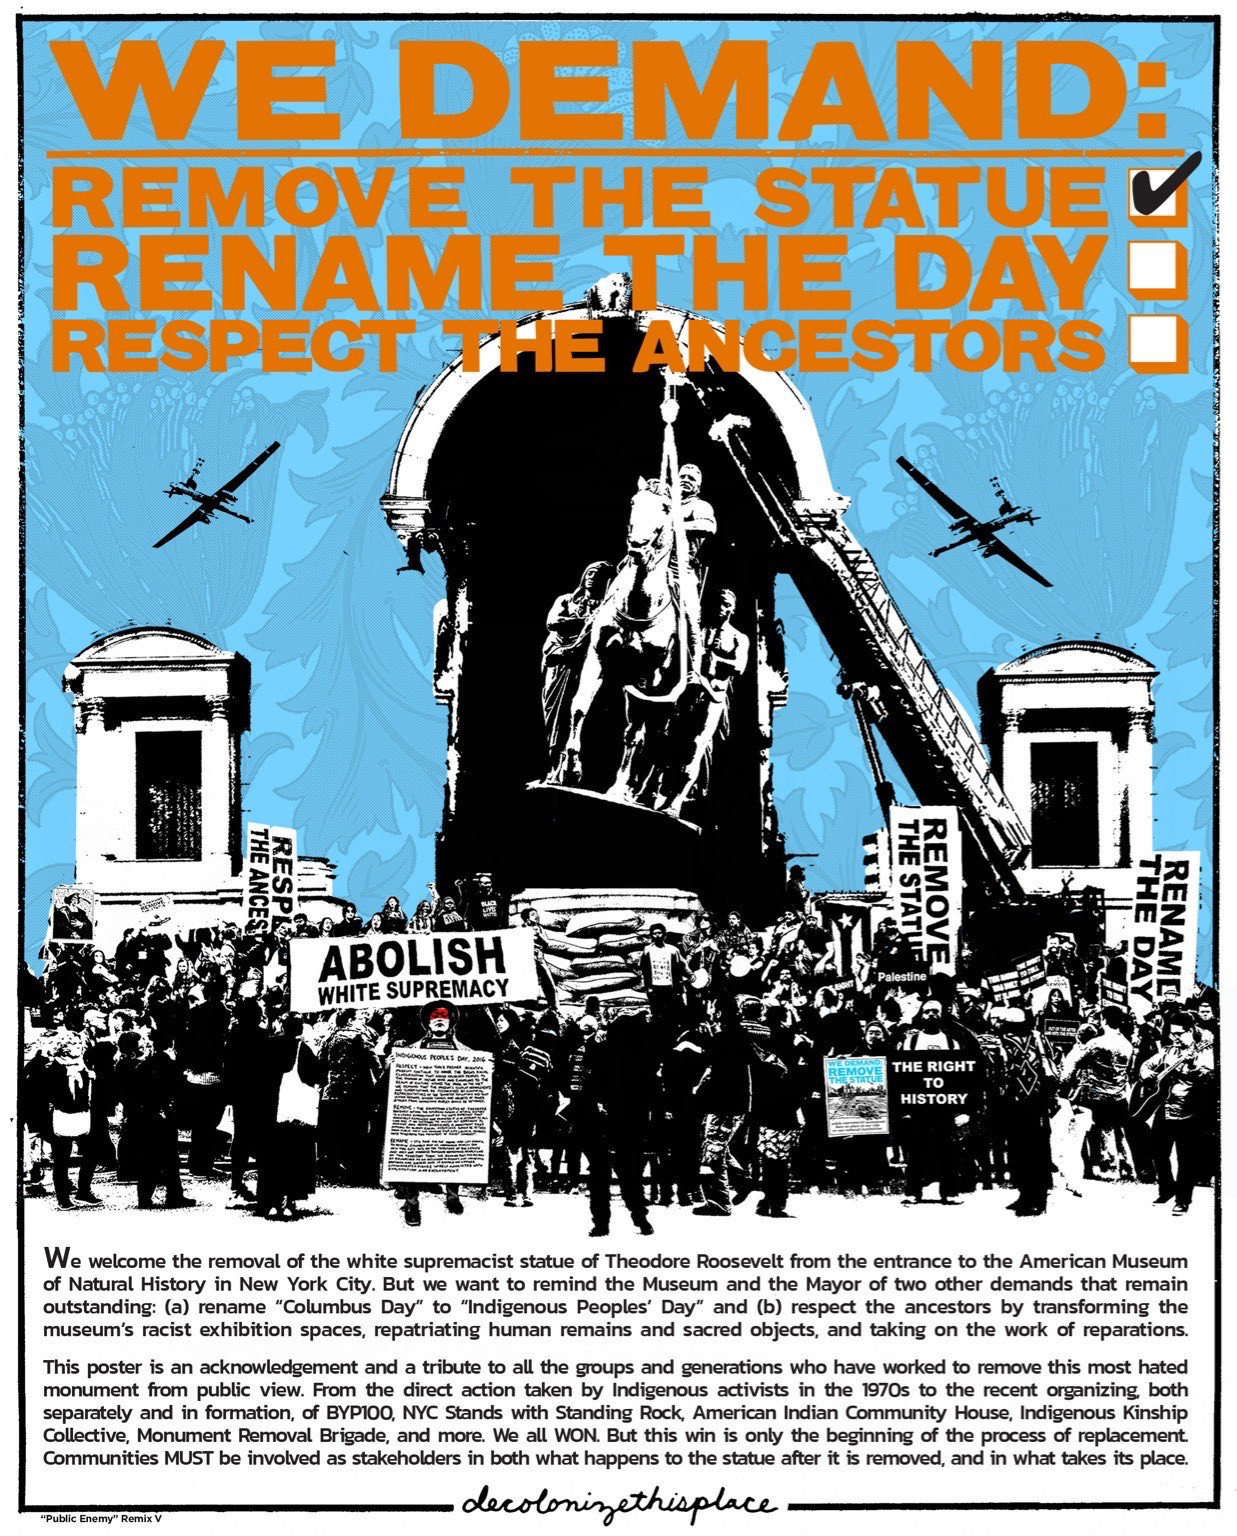 Statement by Decolonize This Place, calling for the recognition of indigenous demands and an end to white supremacy